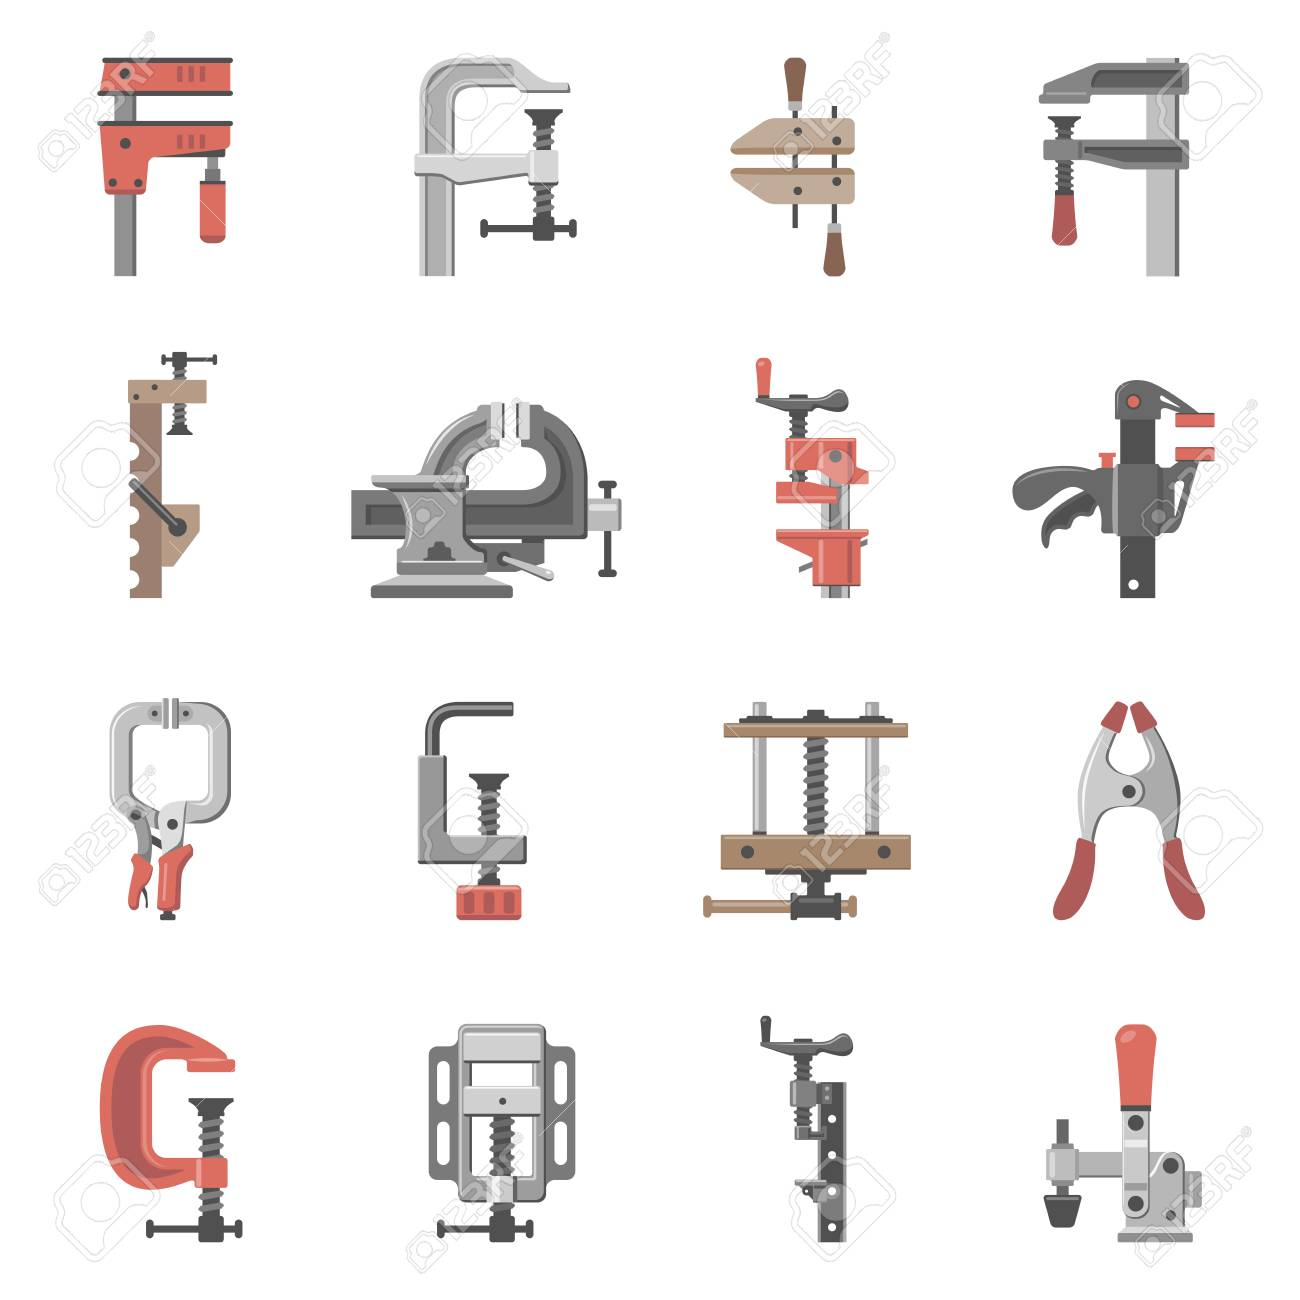 Types Of Clamps >> Sixteen Different Types Of Clamps And Vises